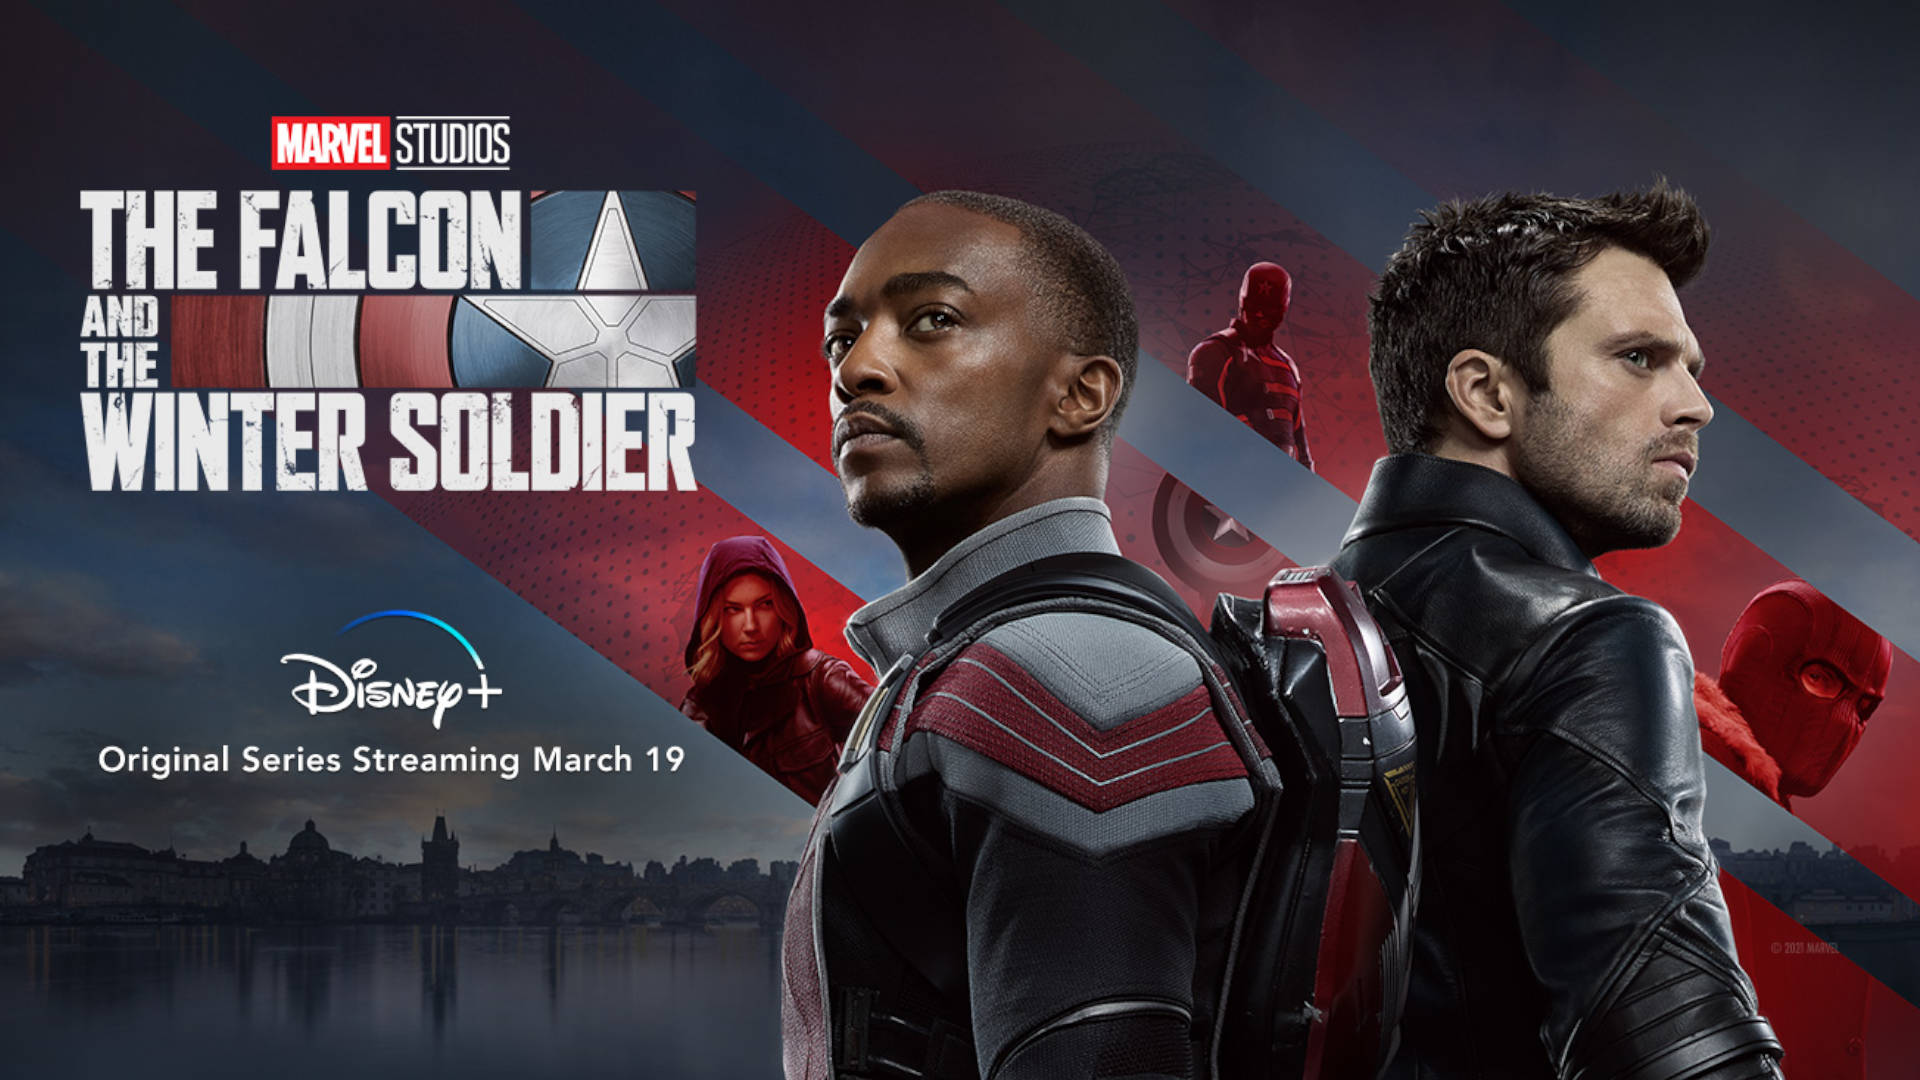 You are currently viewing Notes On A TV Show: The Falcon and the Winter Soldier